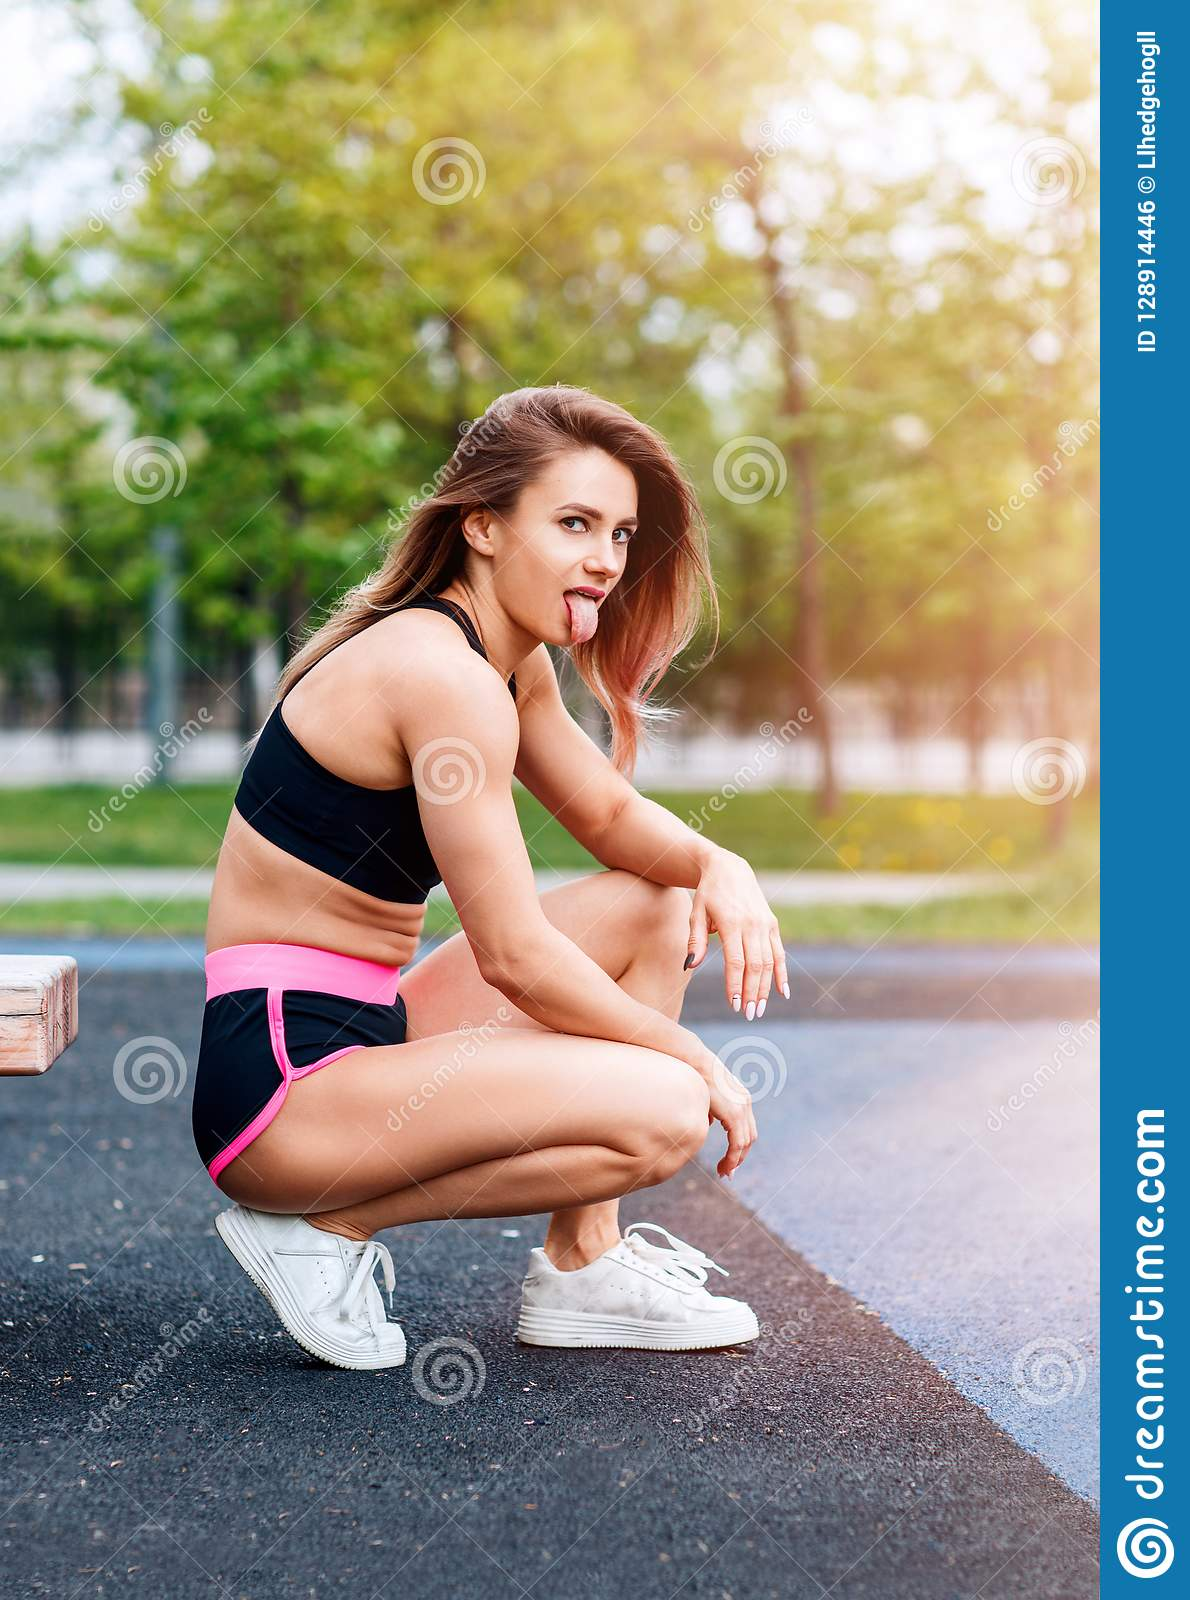 Sporty woman with perfect athletic body shows tongue